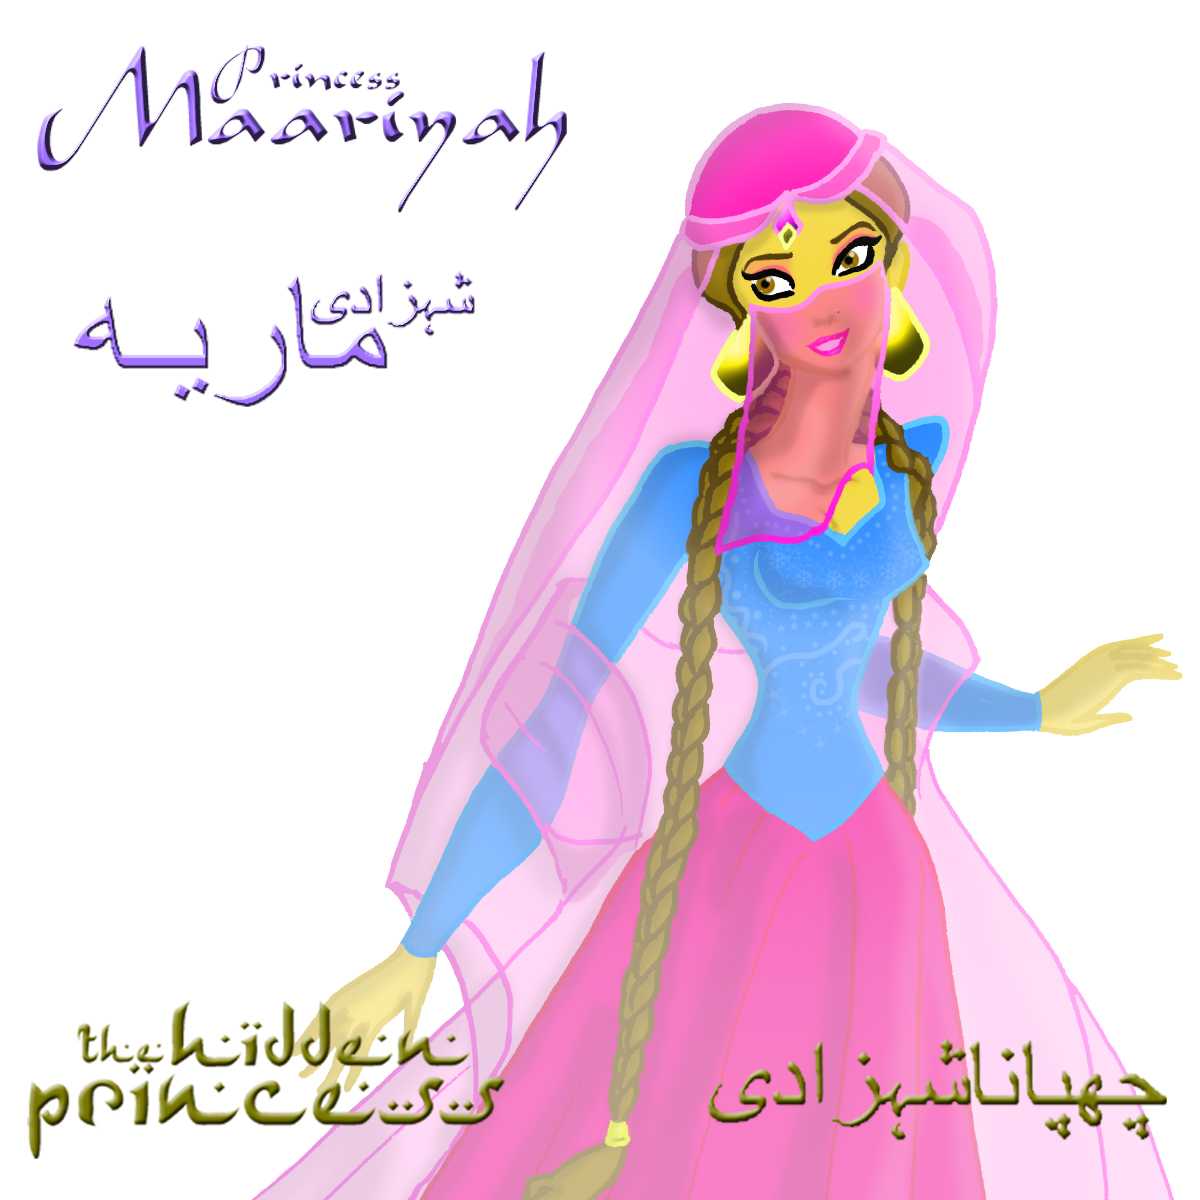 pocahontas muslim personals Yes pocahontas did marry kocoum the real pocahontas anyway the disney pochontas didnt as kocoum died in the story.